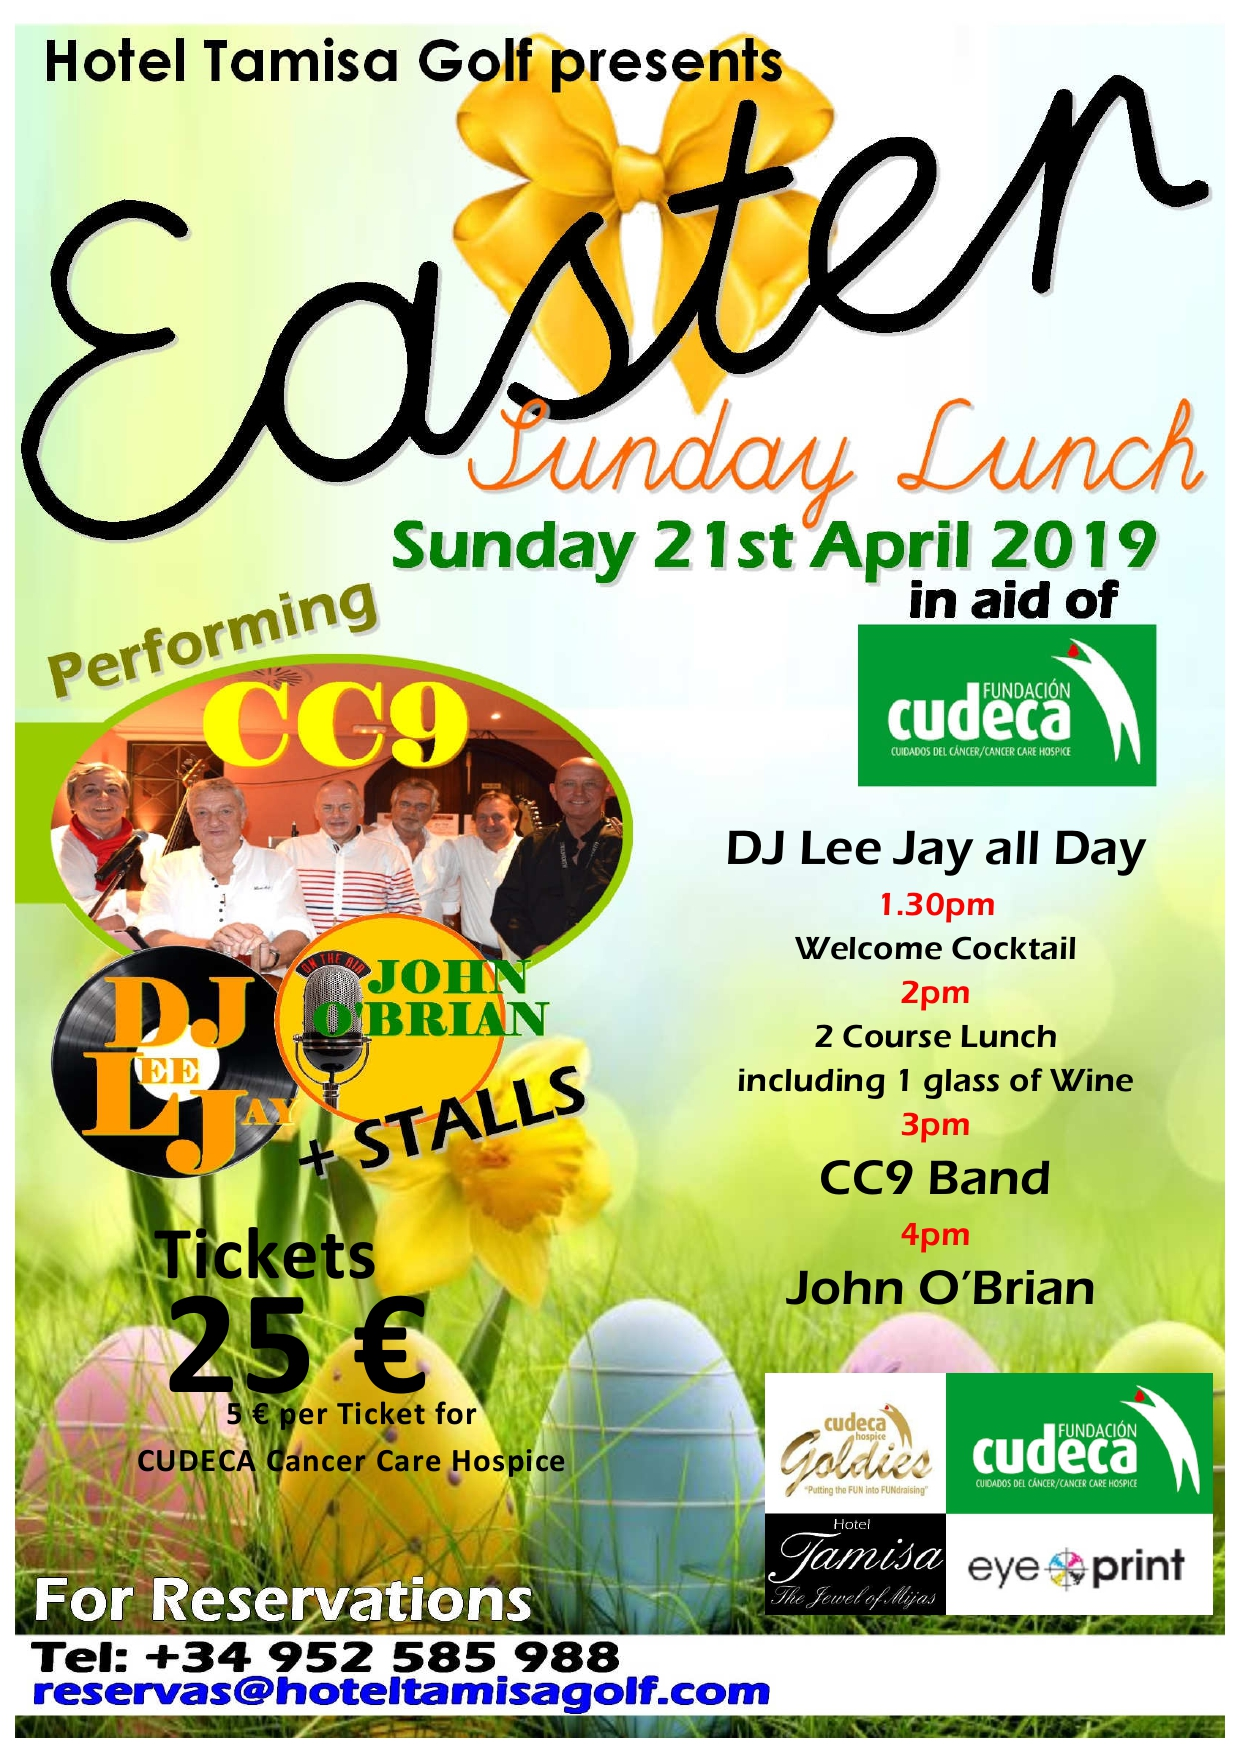 'Egg'stra Special Easter Sunday with the Goldies at Tamisa Golf Hotel!